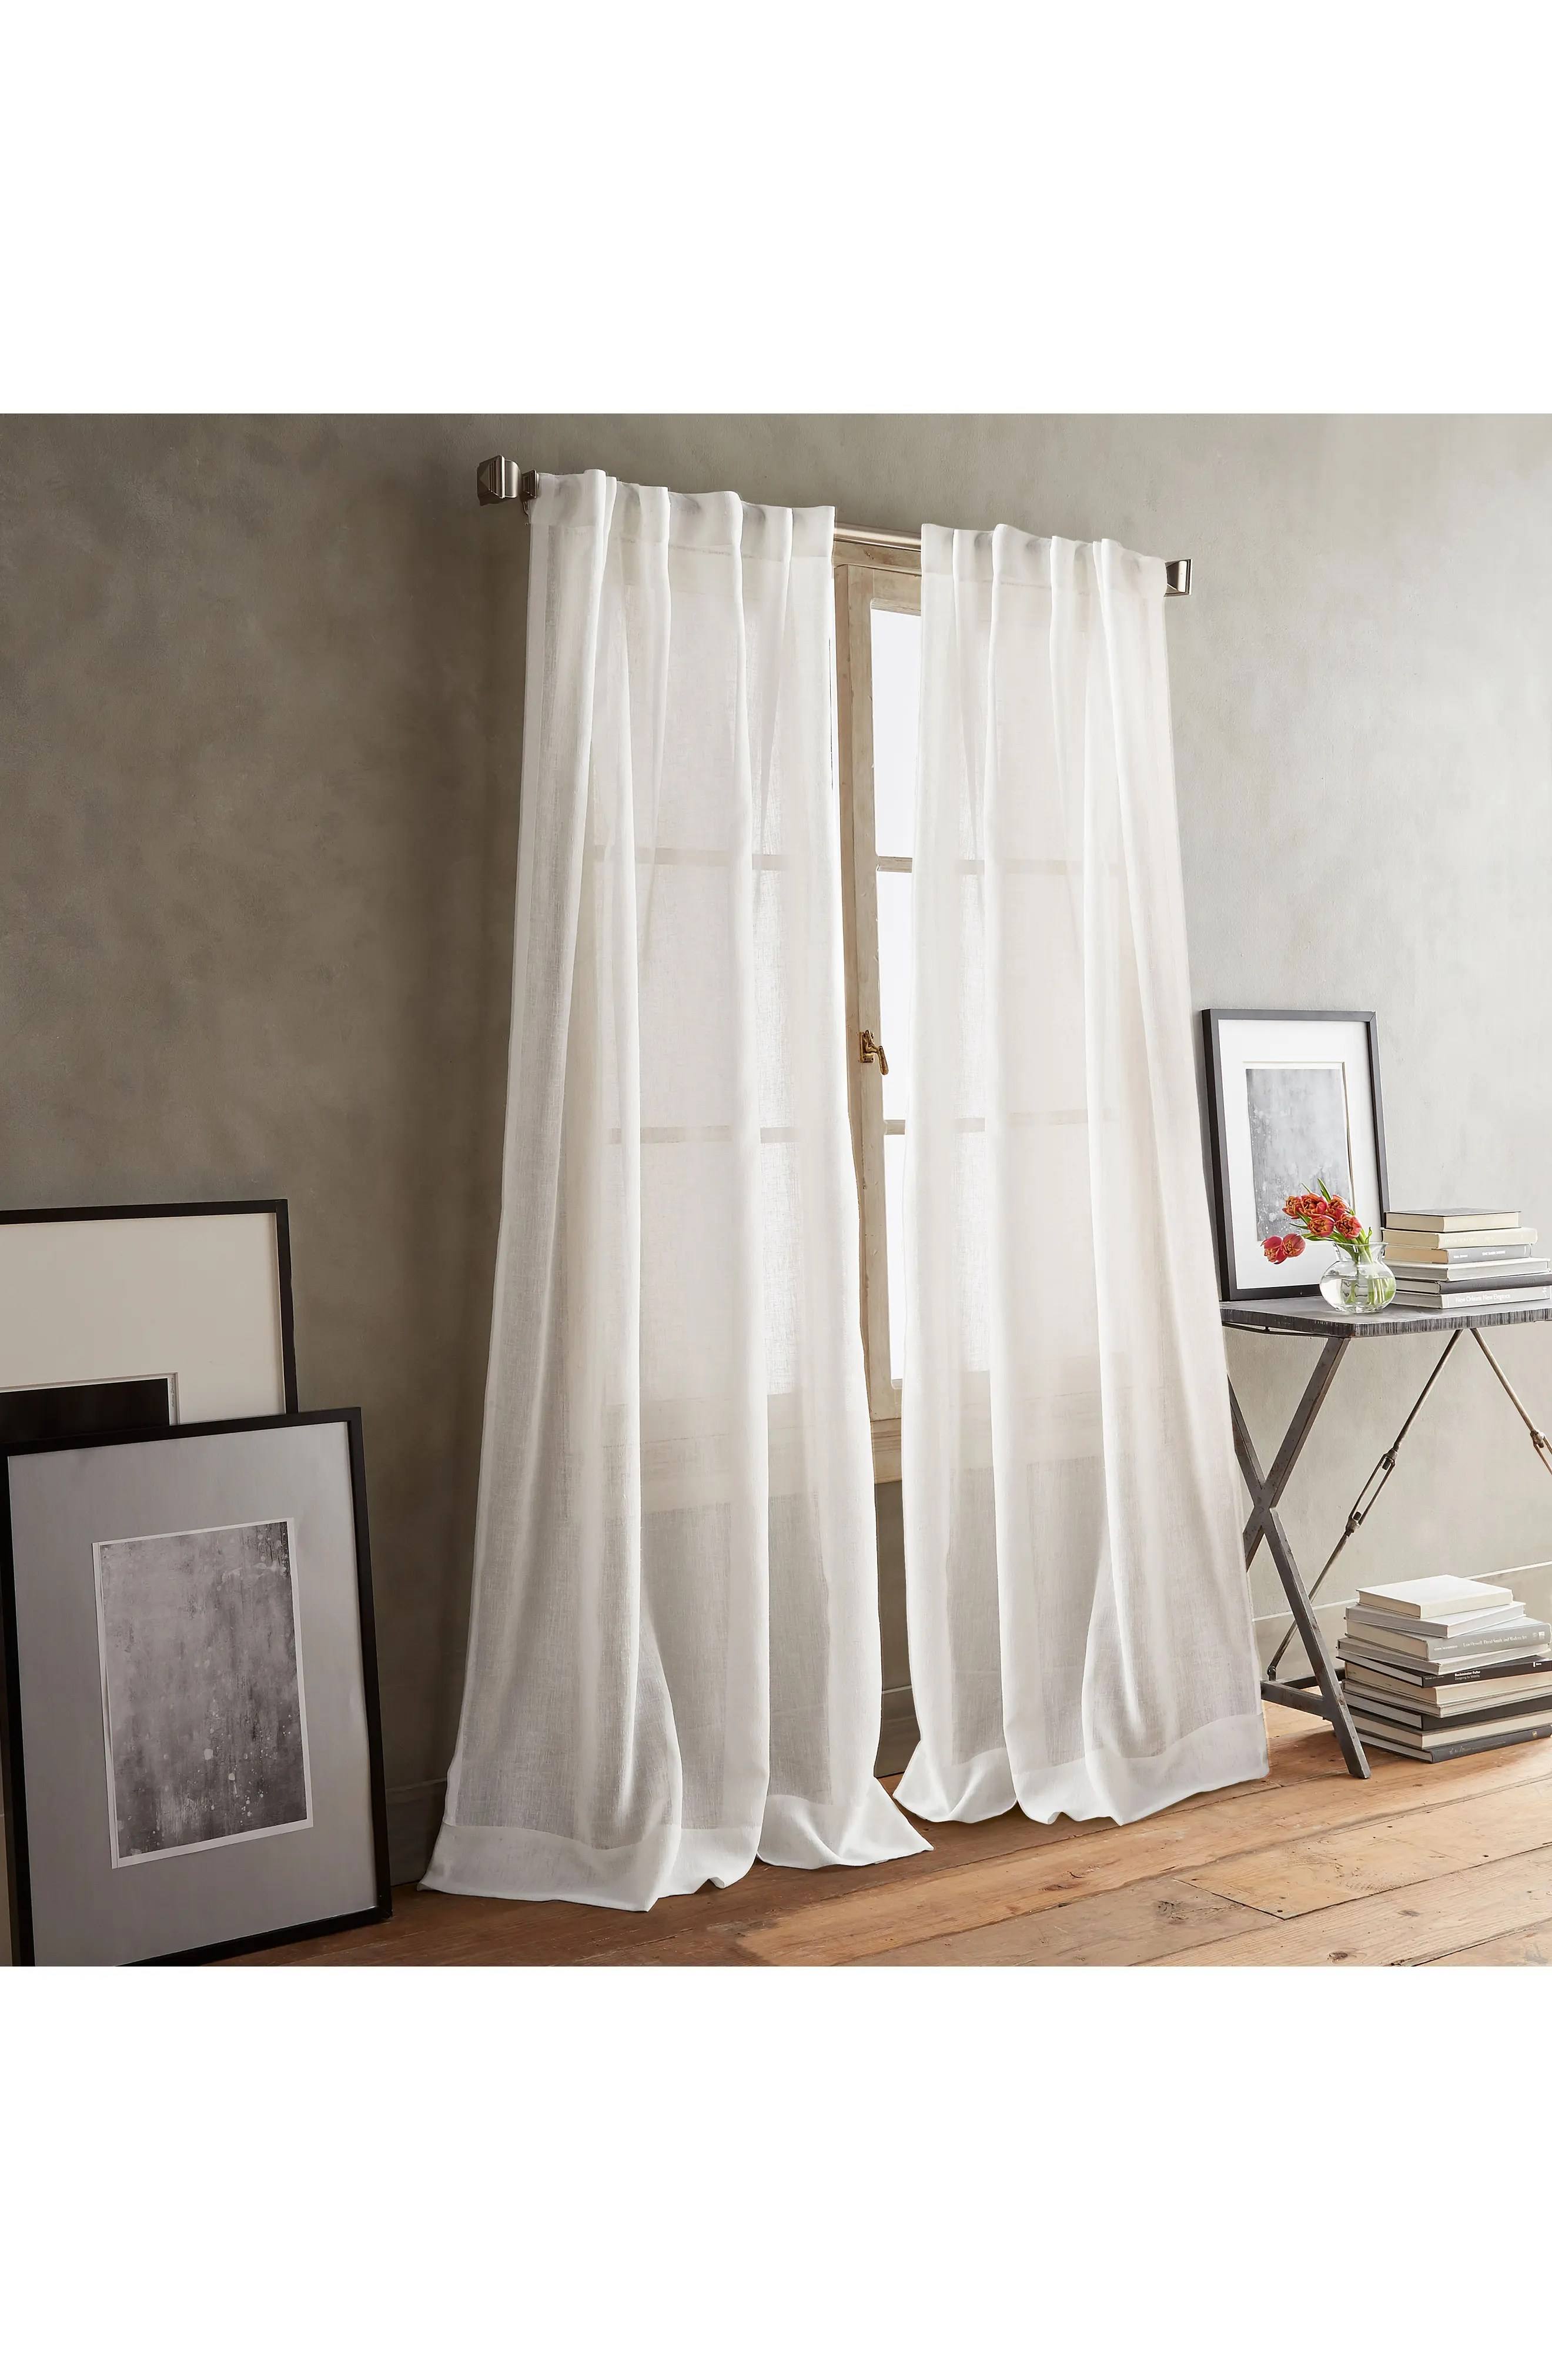 Baby Nursery Curtain Tie Backs Window Treatments Curtains Valances Window Panels Nordstrom